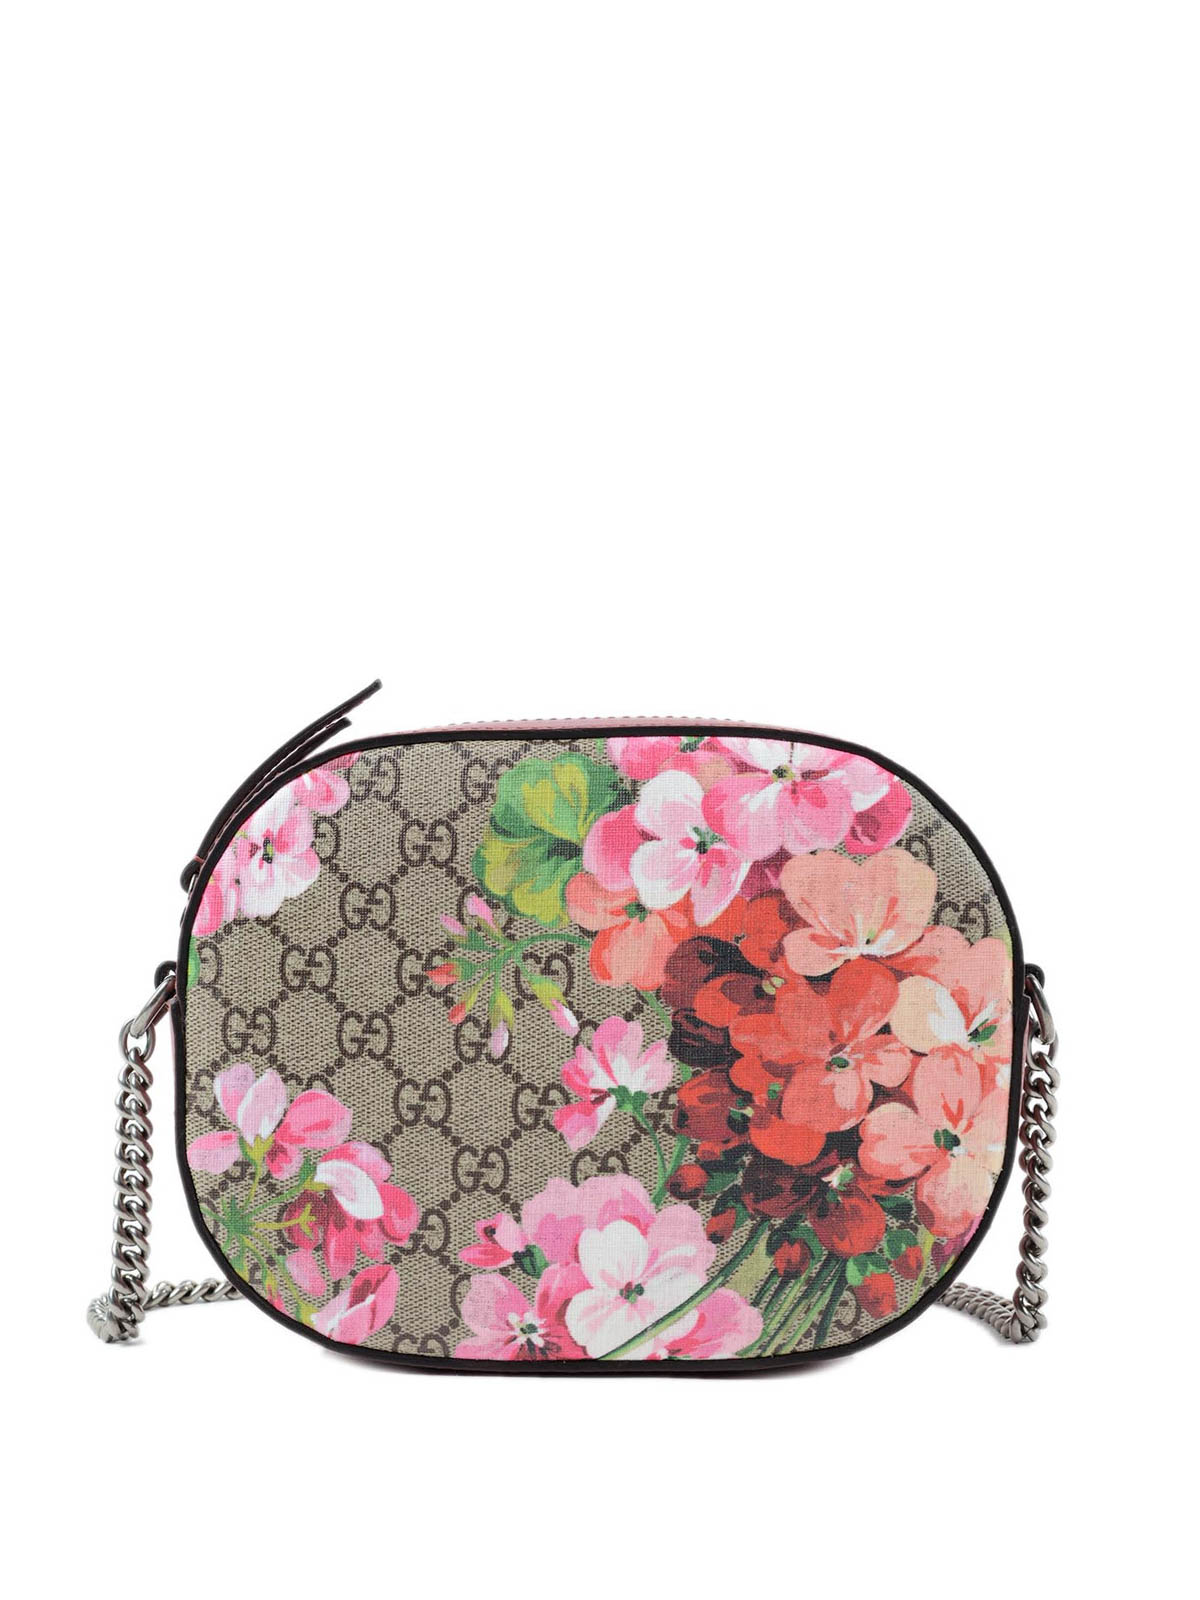 31285c257b3 Gucci - Blooms GG supreme mini chain bag - cross body bags - 409535 ...